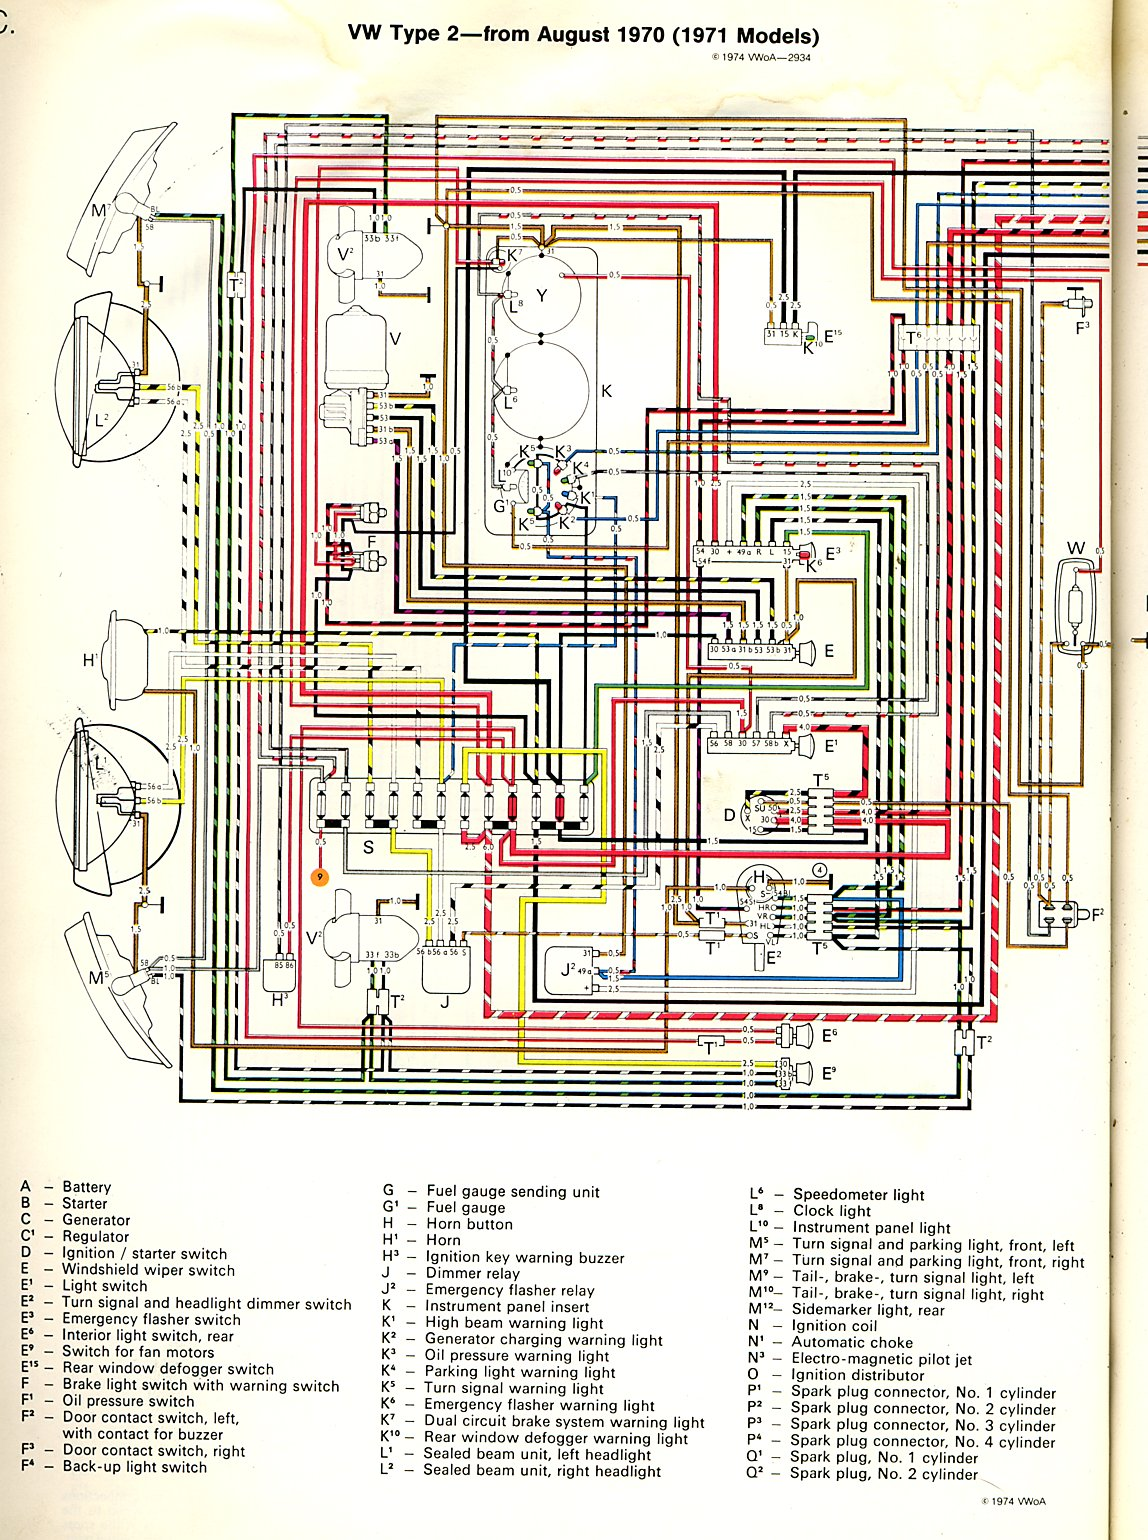 1971 Vw Bus Fuse Box Data Wiring Diagram Schematic Nova 1979 Diagrams Oreo Beetle Relay